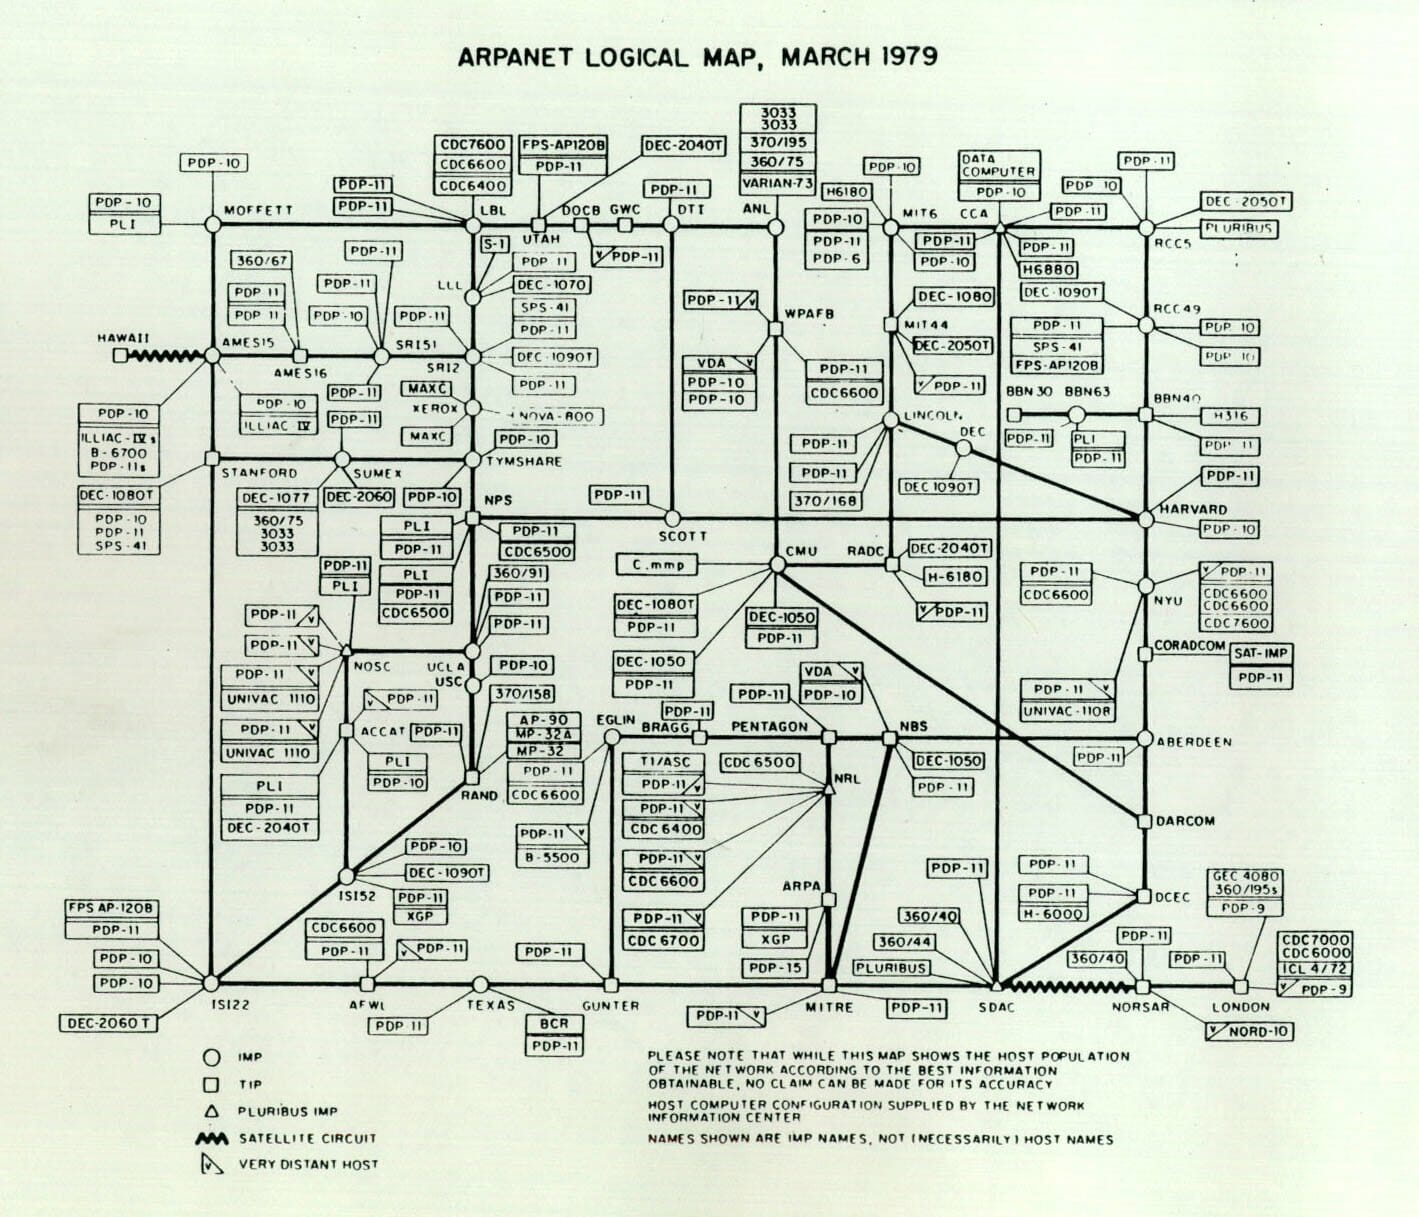 ARPANET was the network that became the basis for the Internet. Based on a concept first published in 1967, ARPANET was developed under the direction of the U.S. Advanced Research Projects Agency (ARPA).